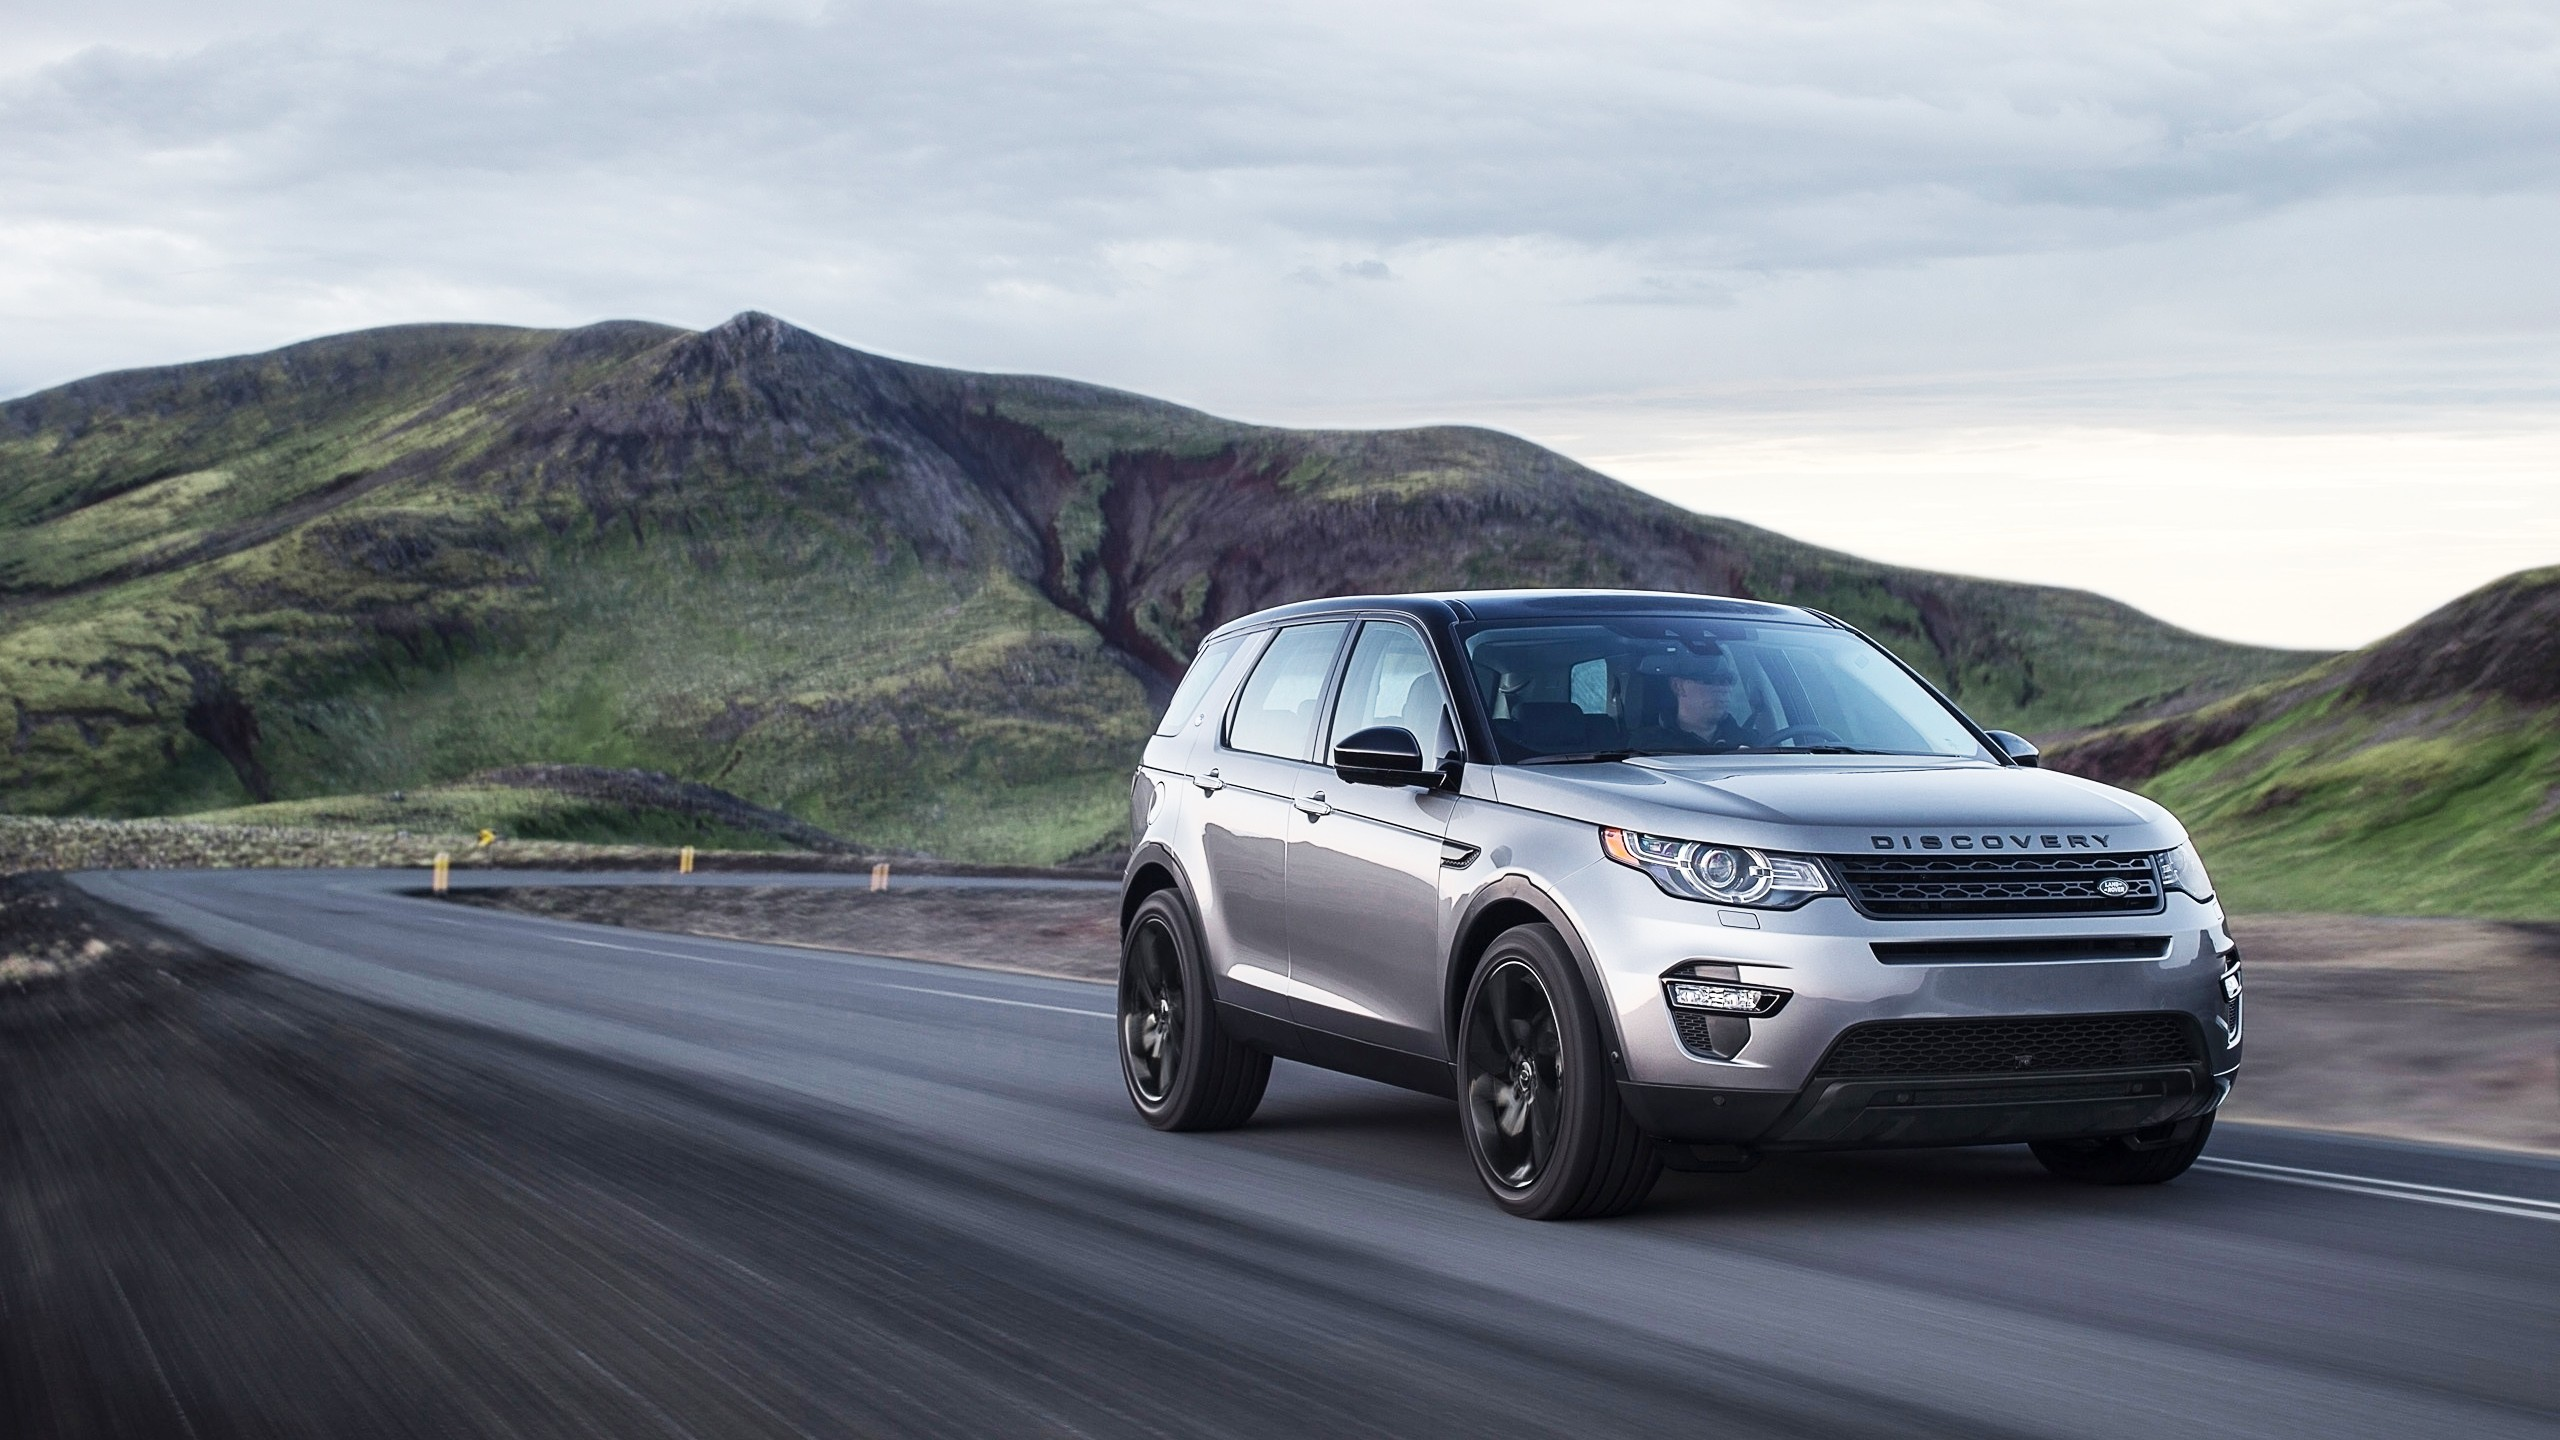 Discovery Sport Wallpaper Android: 2015 Land Rover Discovery Sport Wallpaper